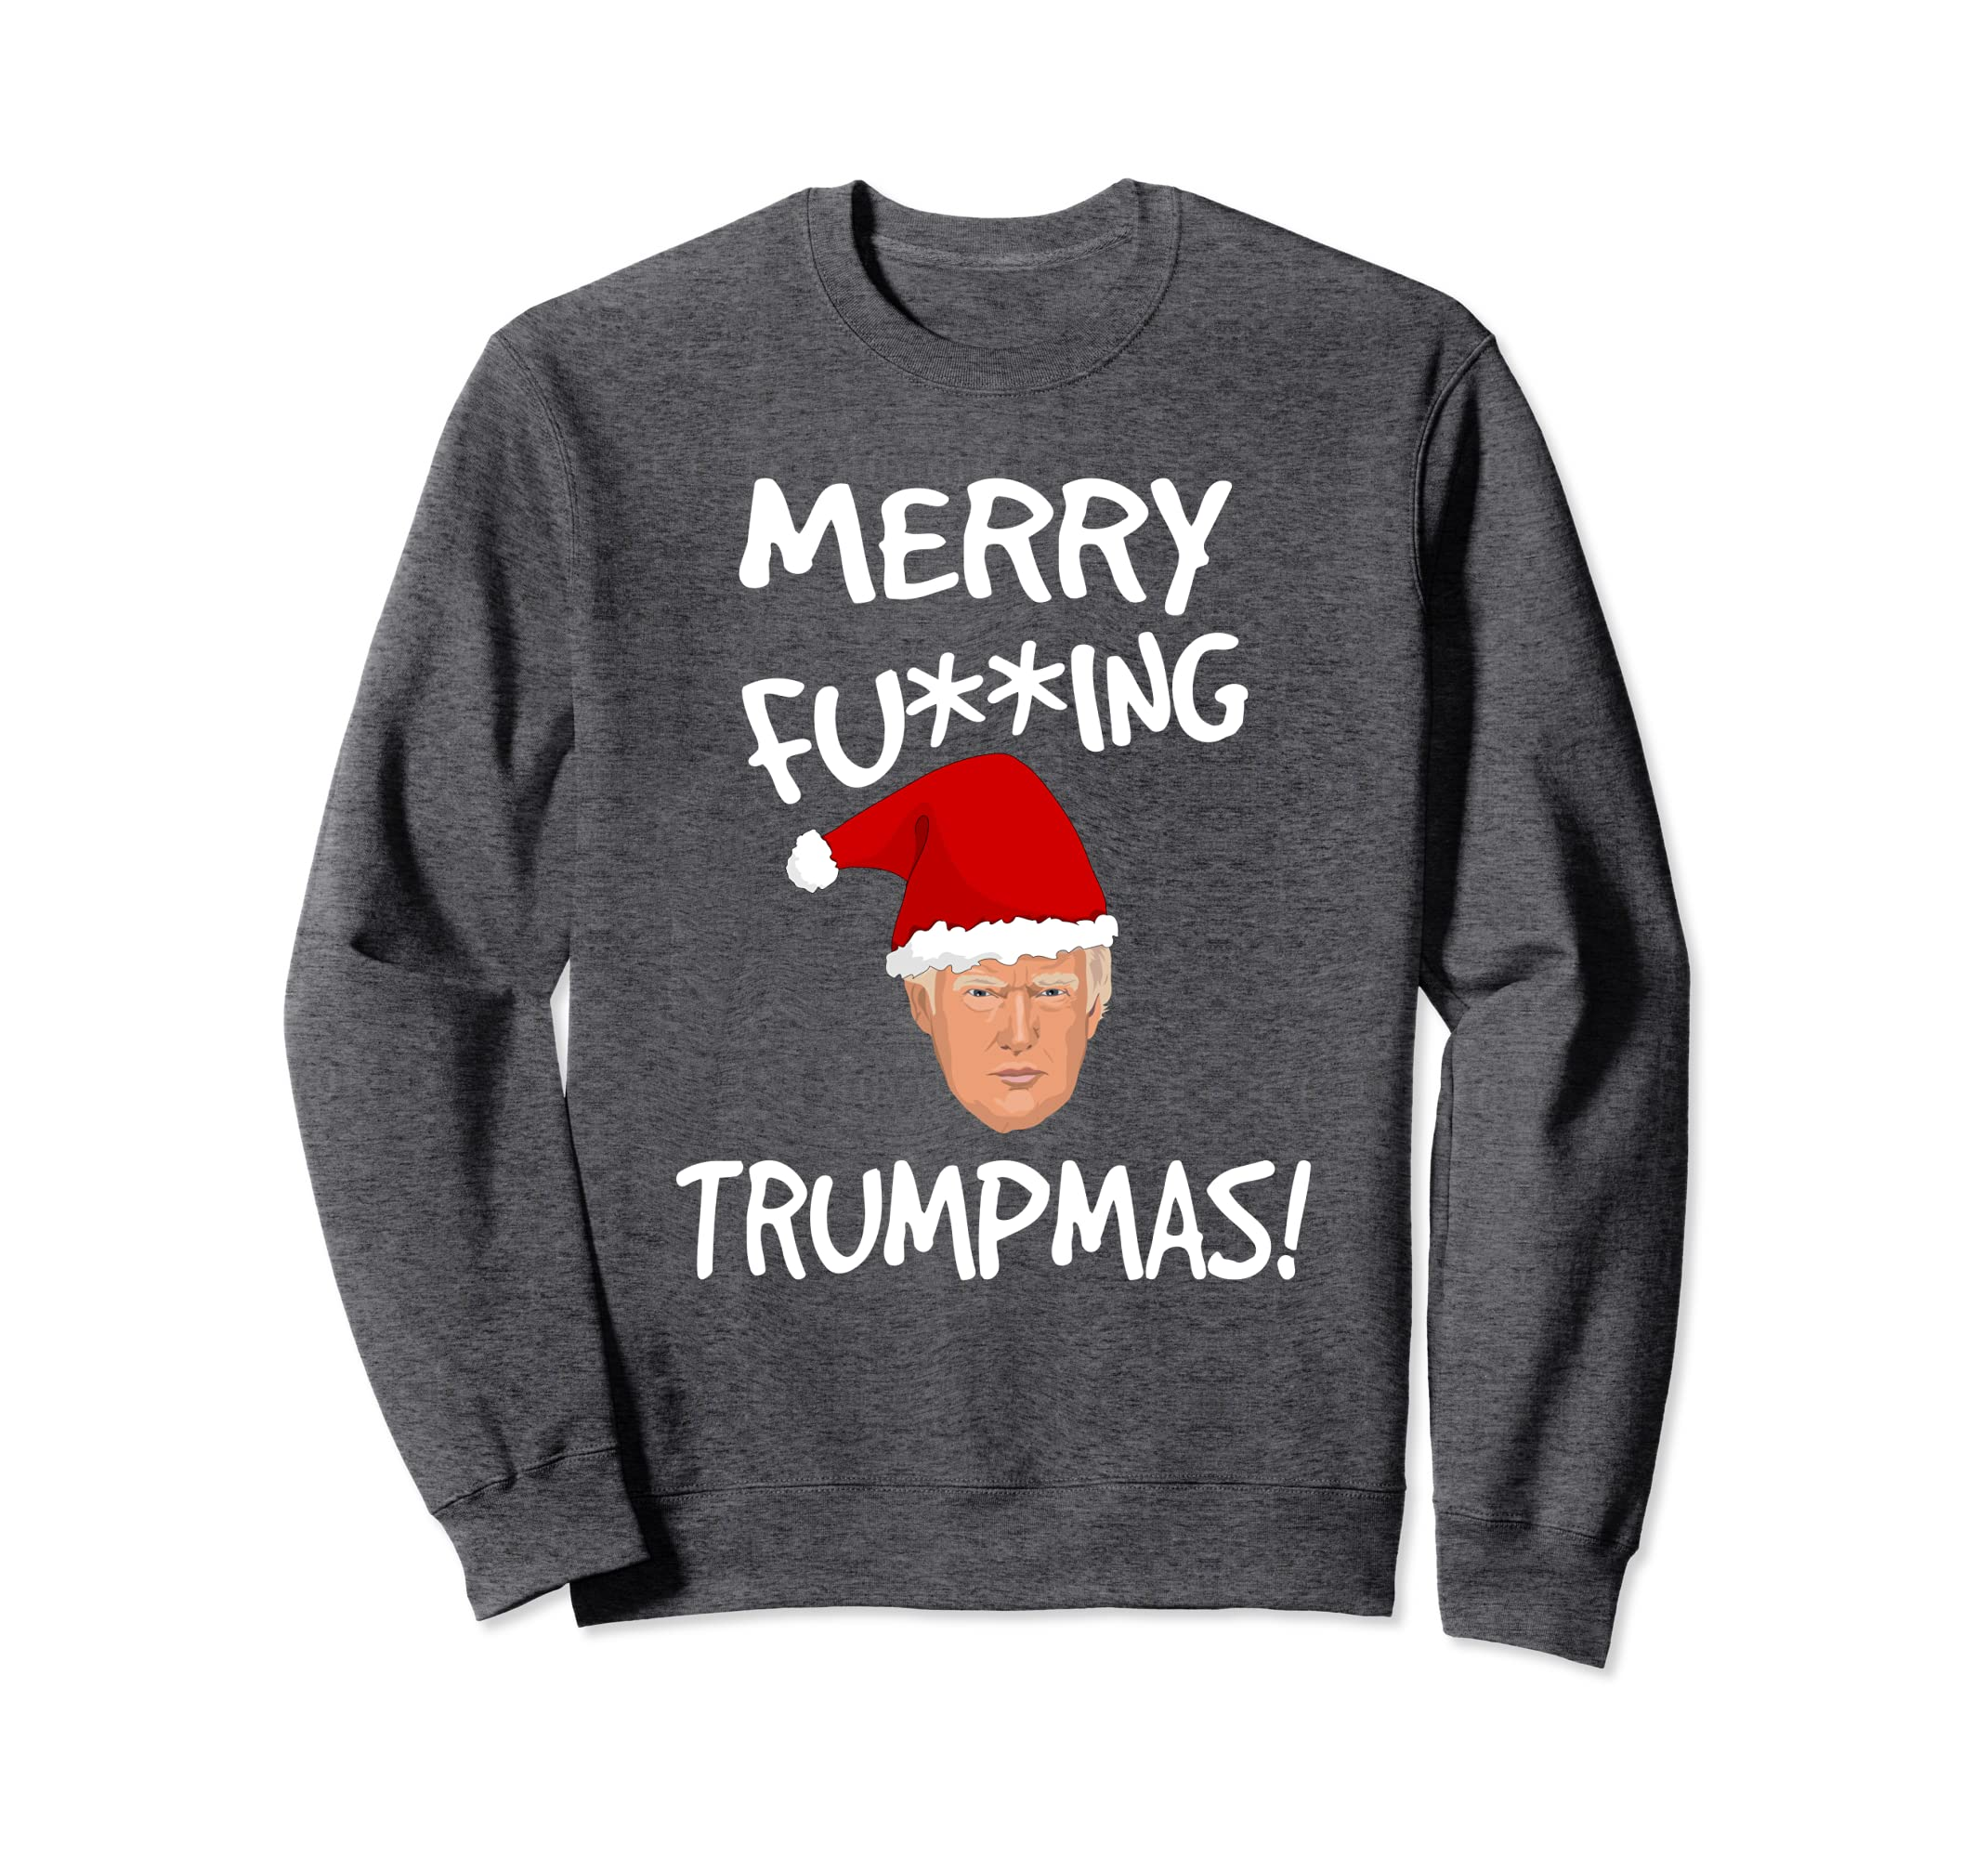 5a1a340c965 Amazon.com  Merry F ing Trumpmas Funny Trump Sweater Gift  Clothing